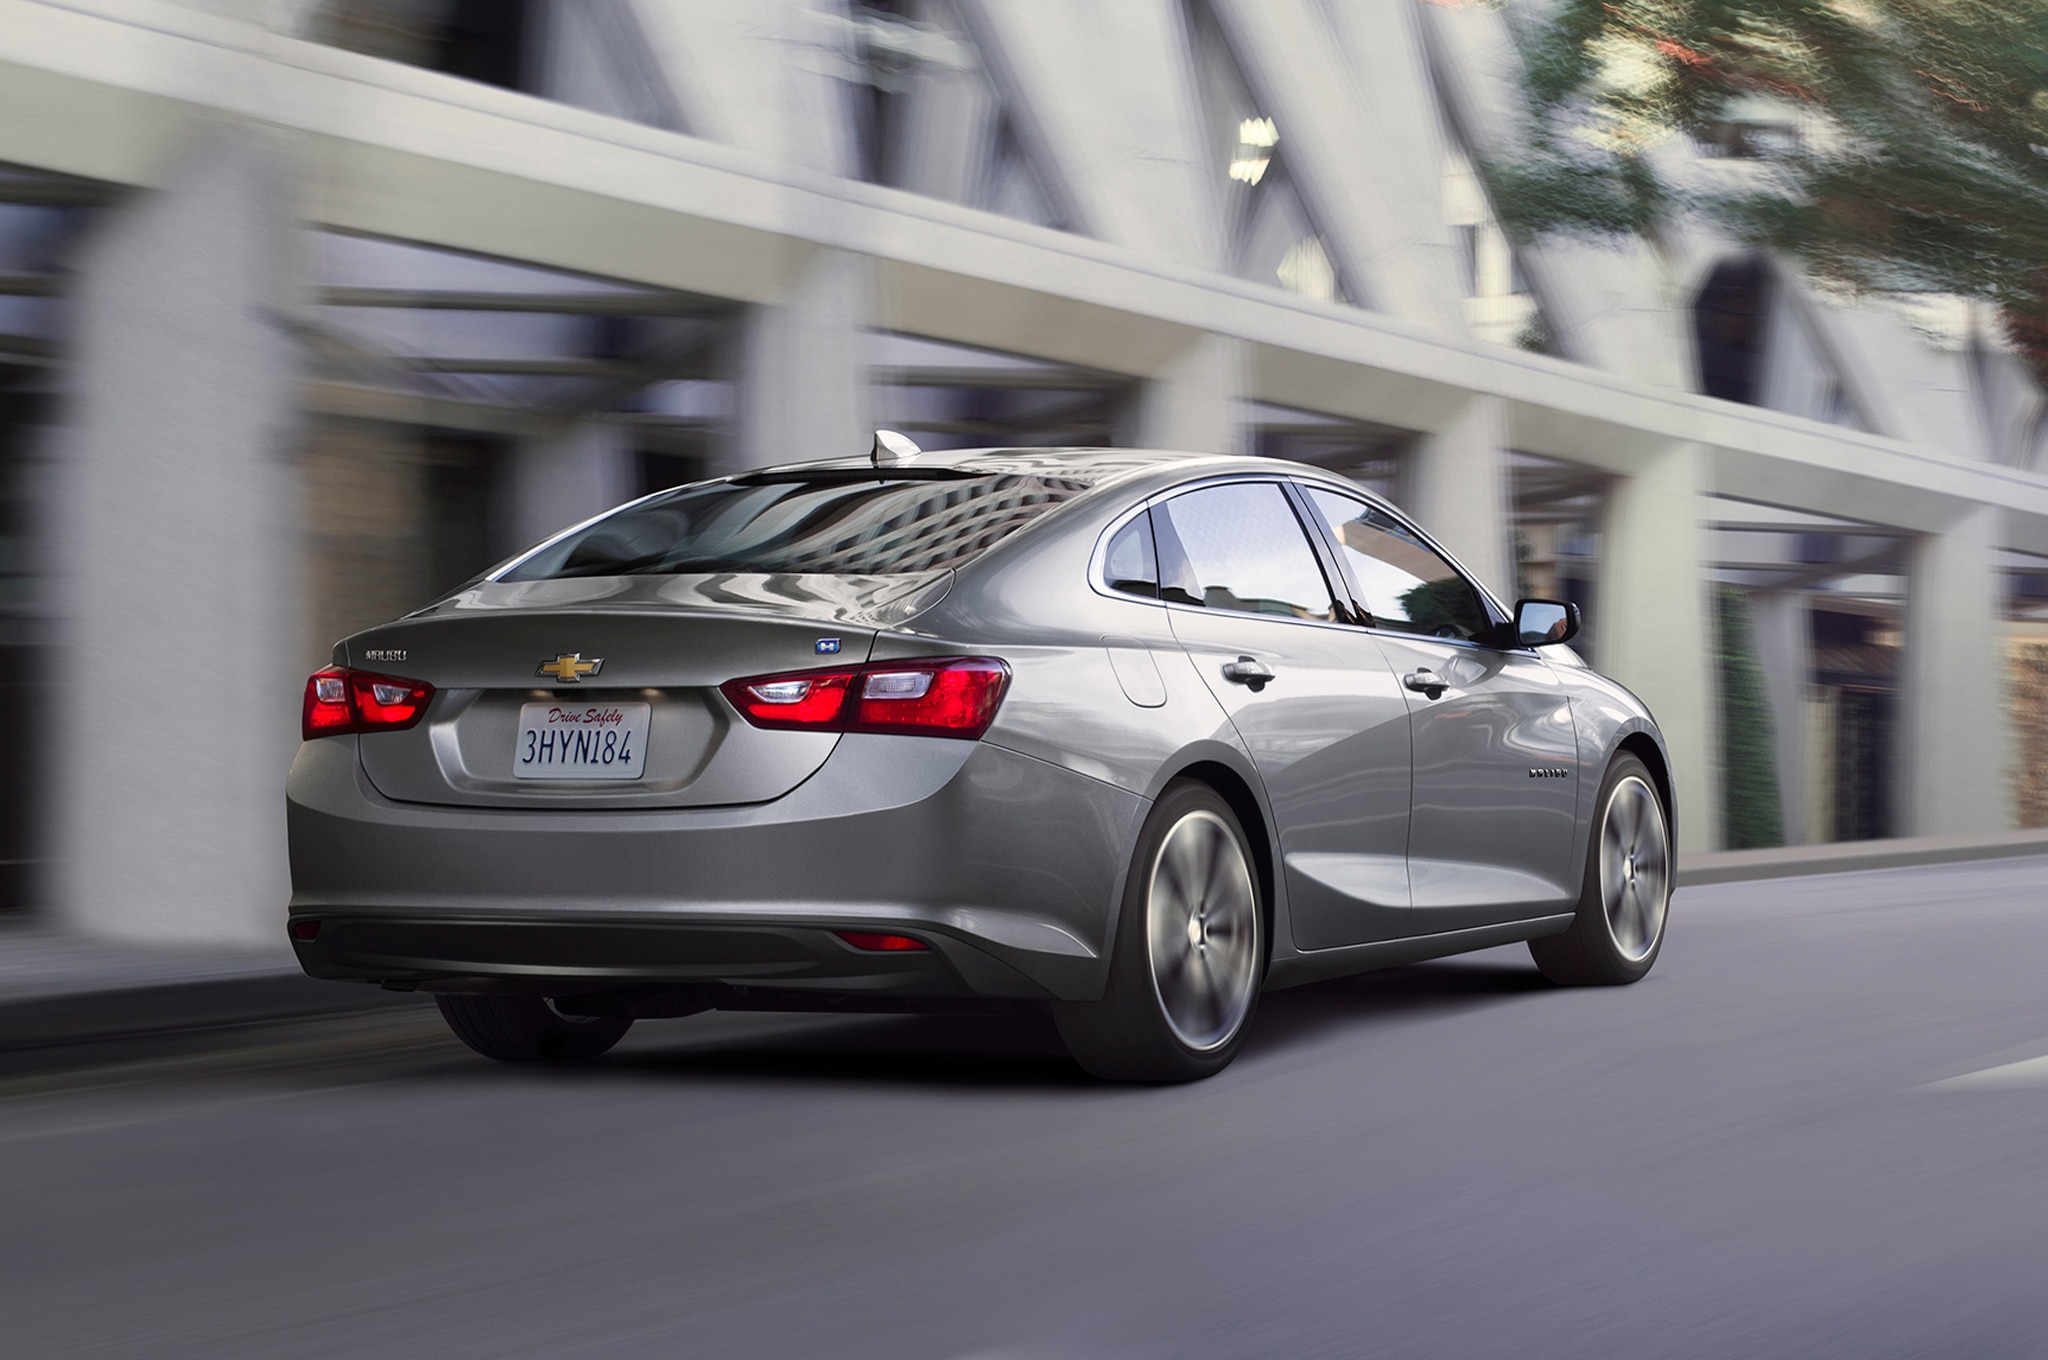 2016 chevrolet malibu hybrid returns 46 mpg automobile magazine. Black Bedroom Furniture Sets. Home Design Ideas